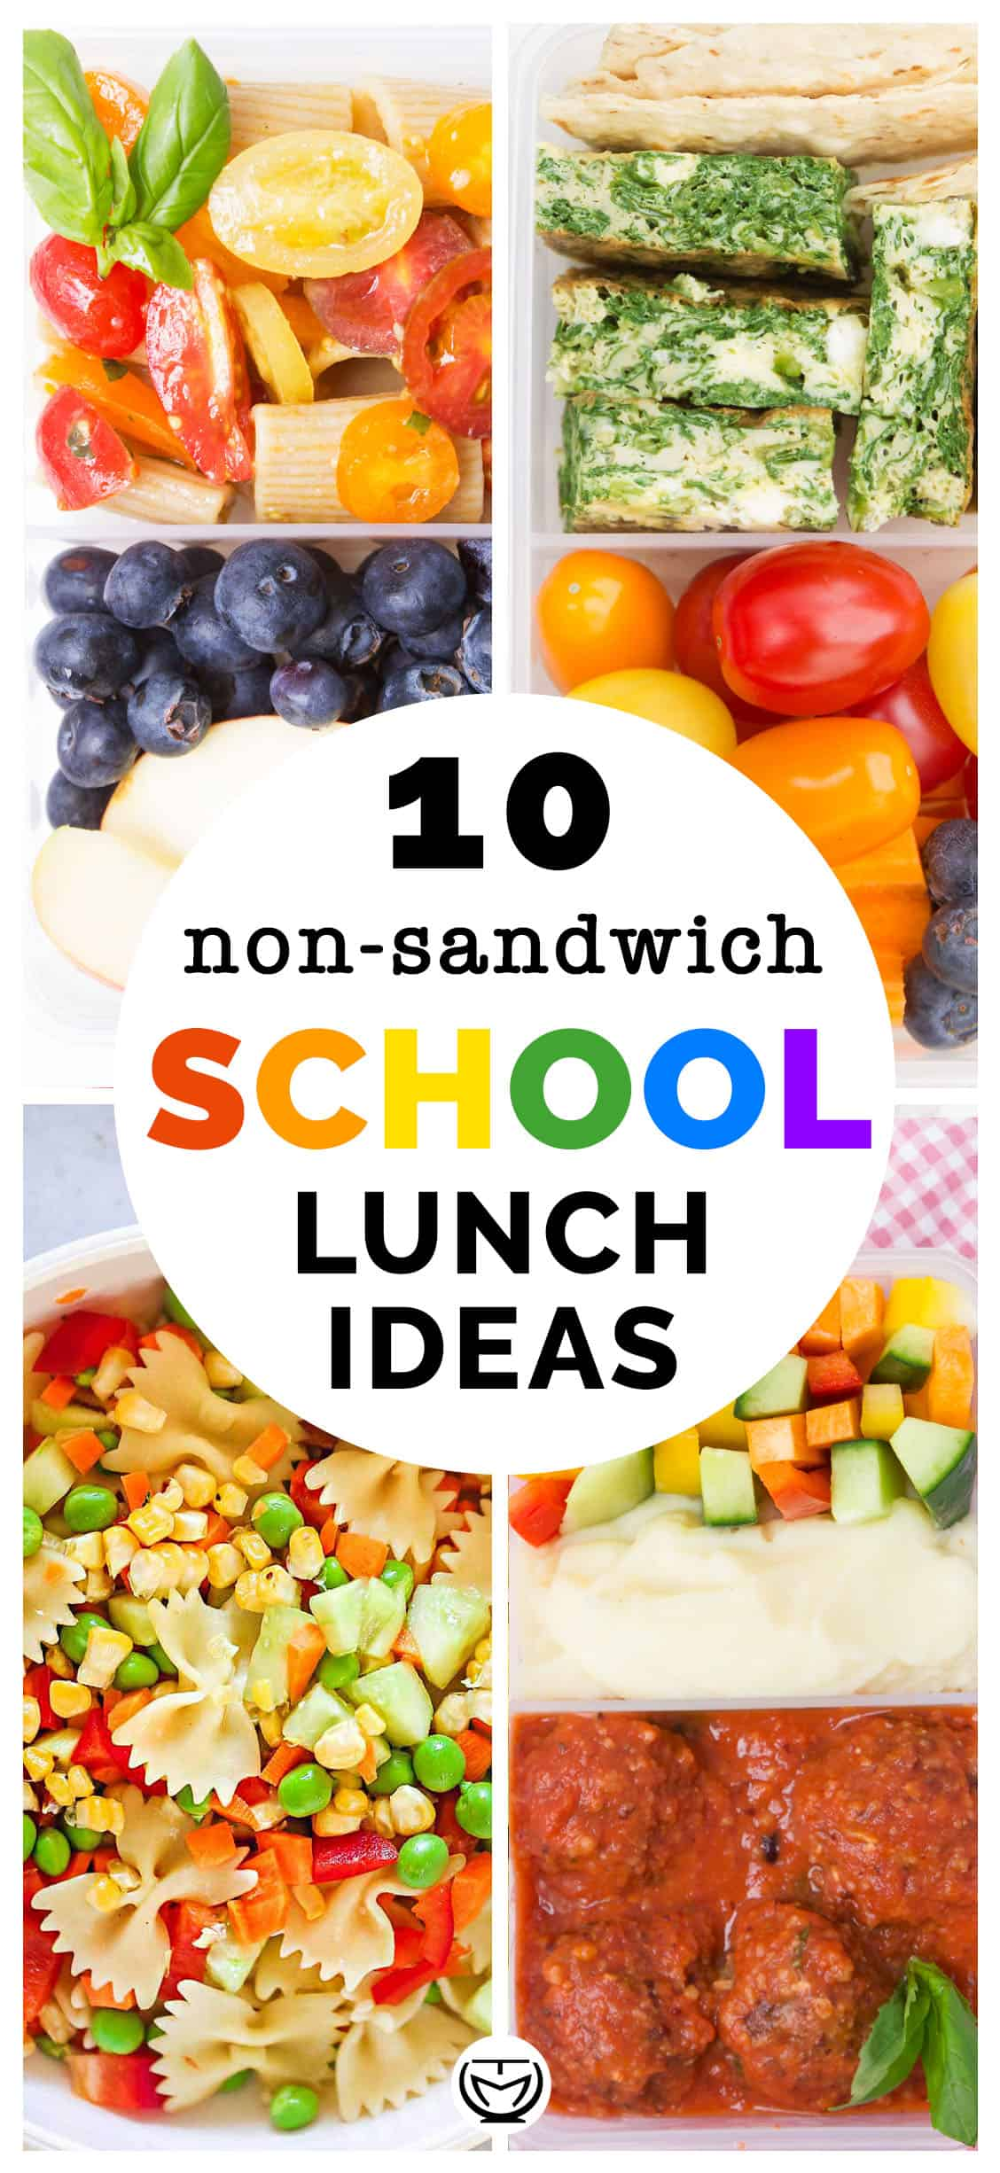 10 HEALTHY LUNCH BOX IDEAS FOR SCHOOL